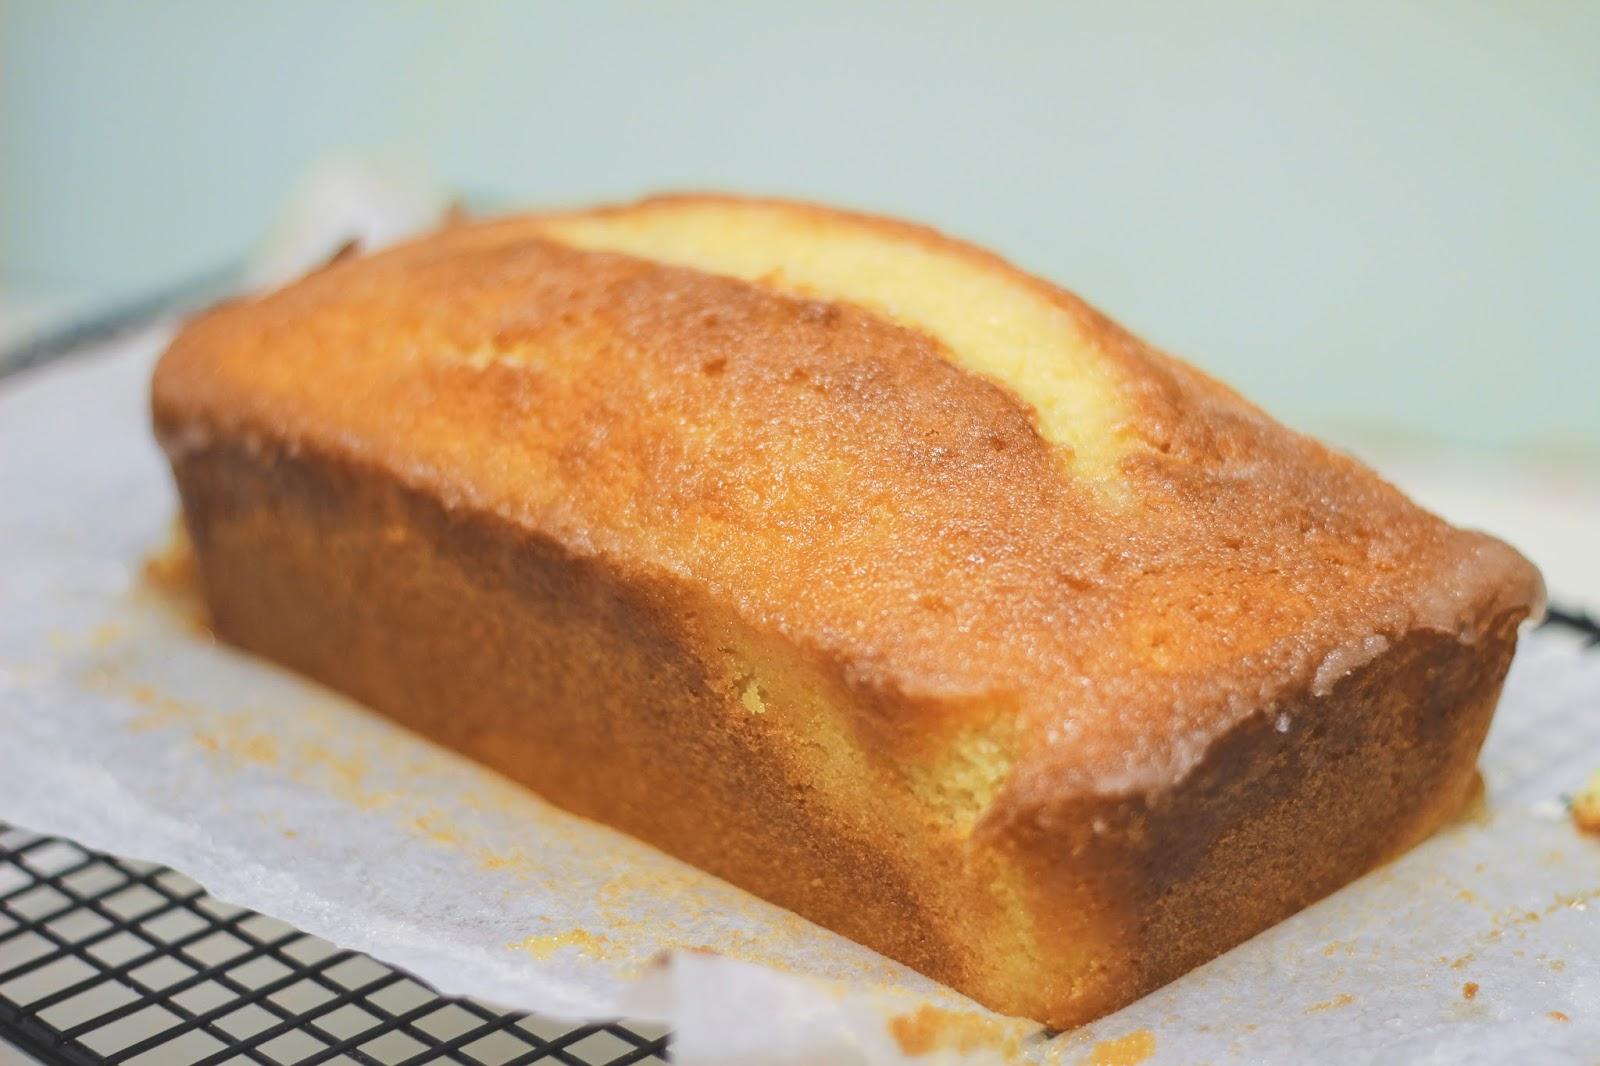 British Bake Off Lemon Drizzle Cake